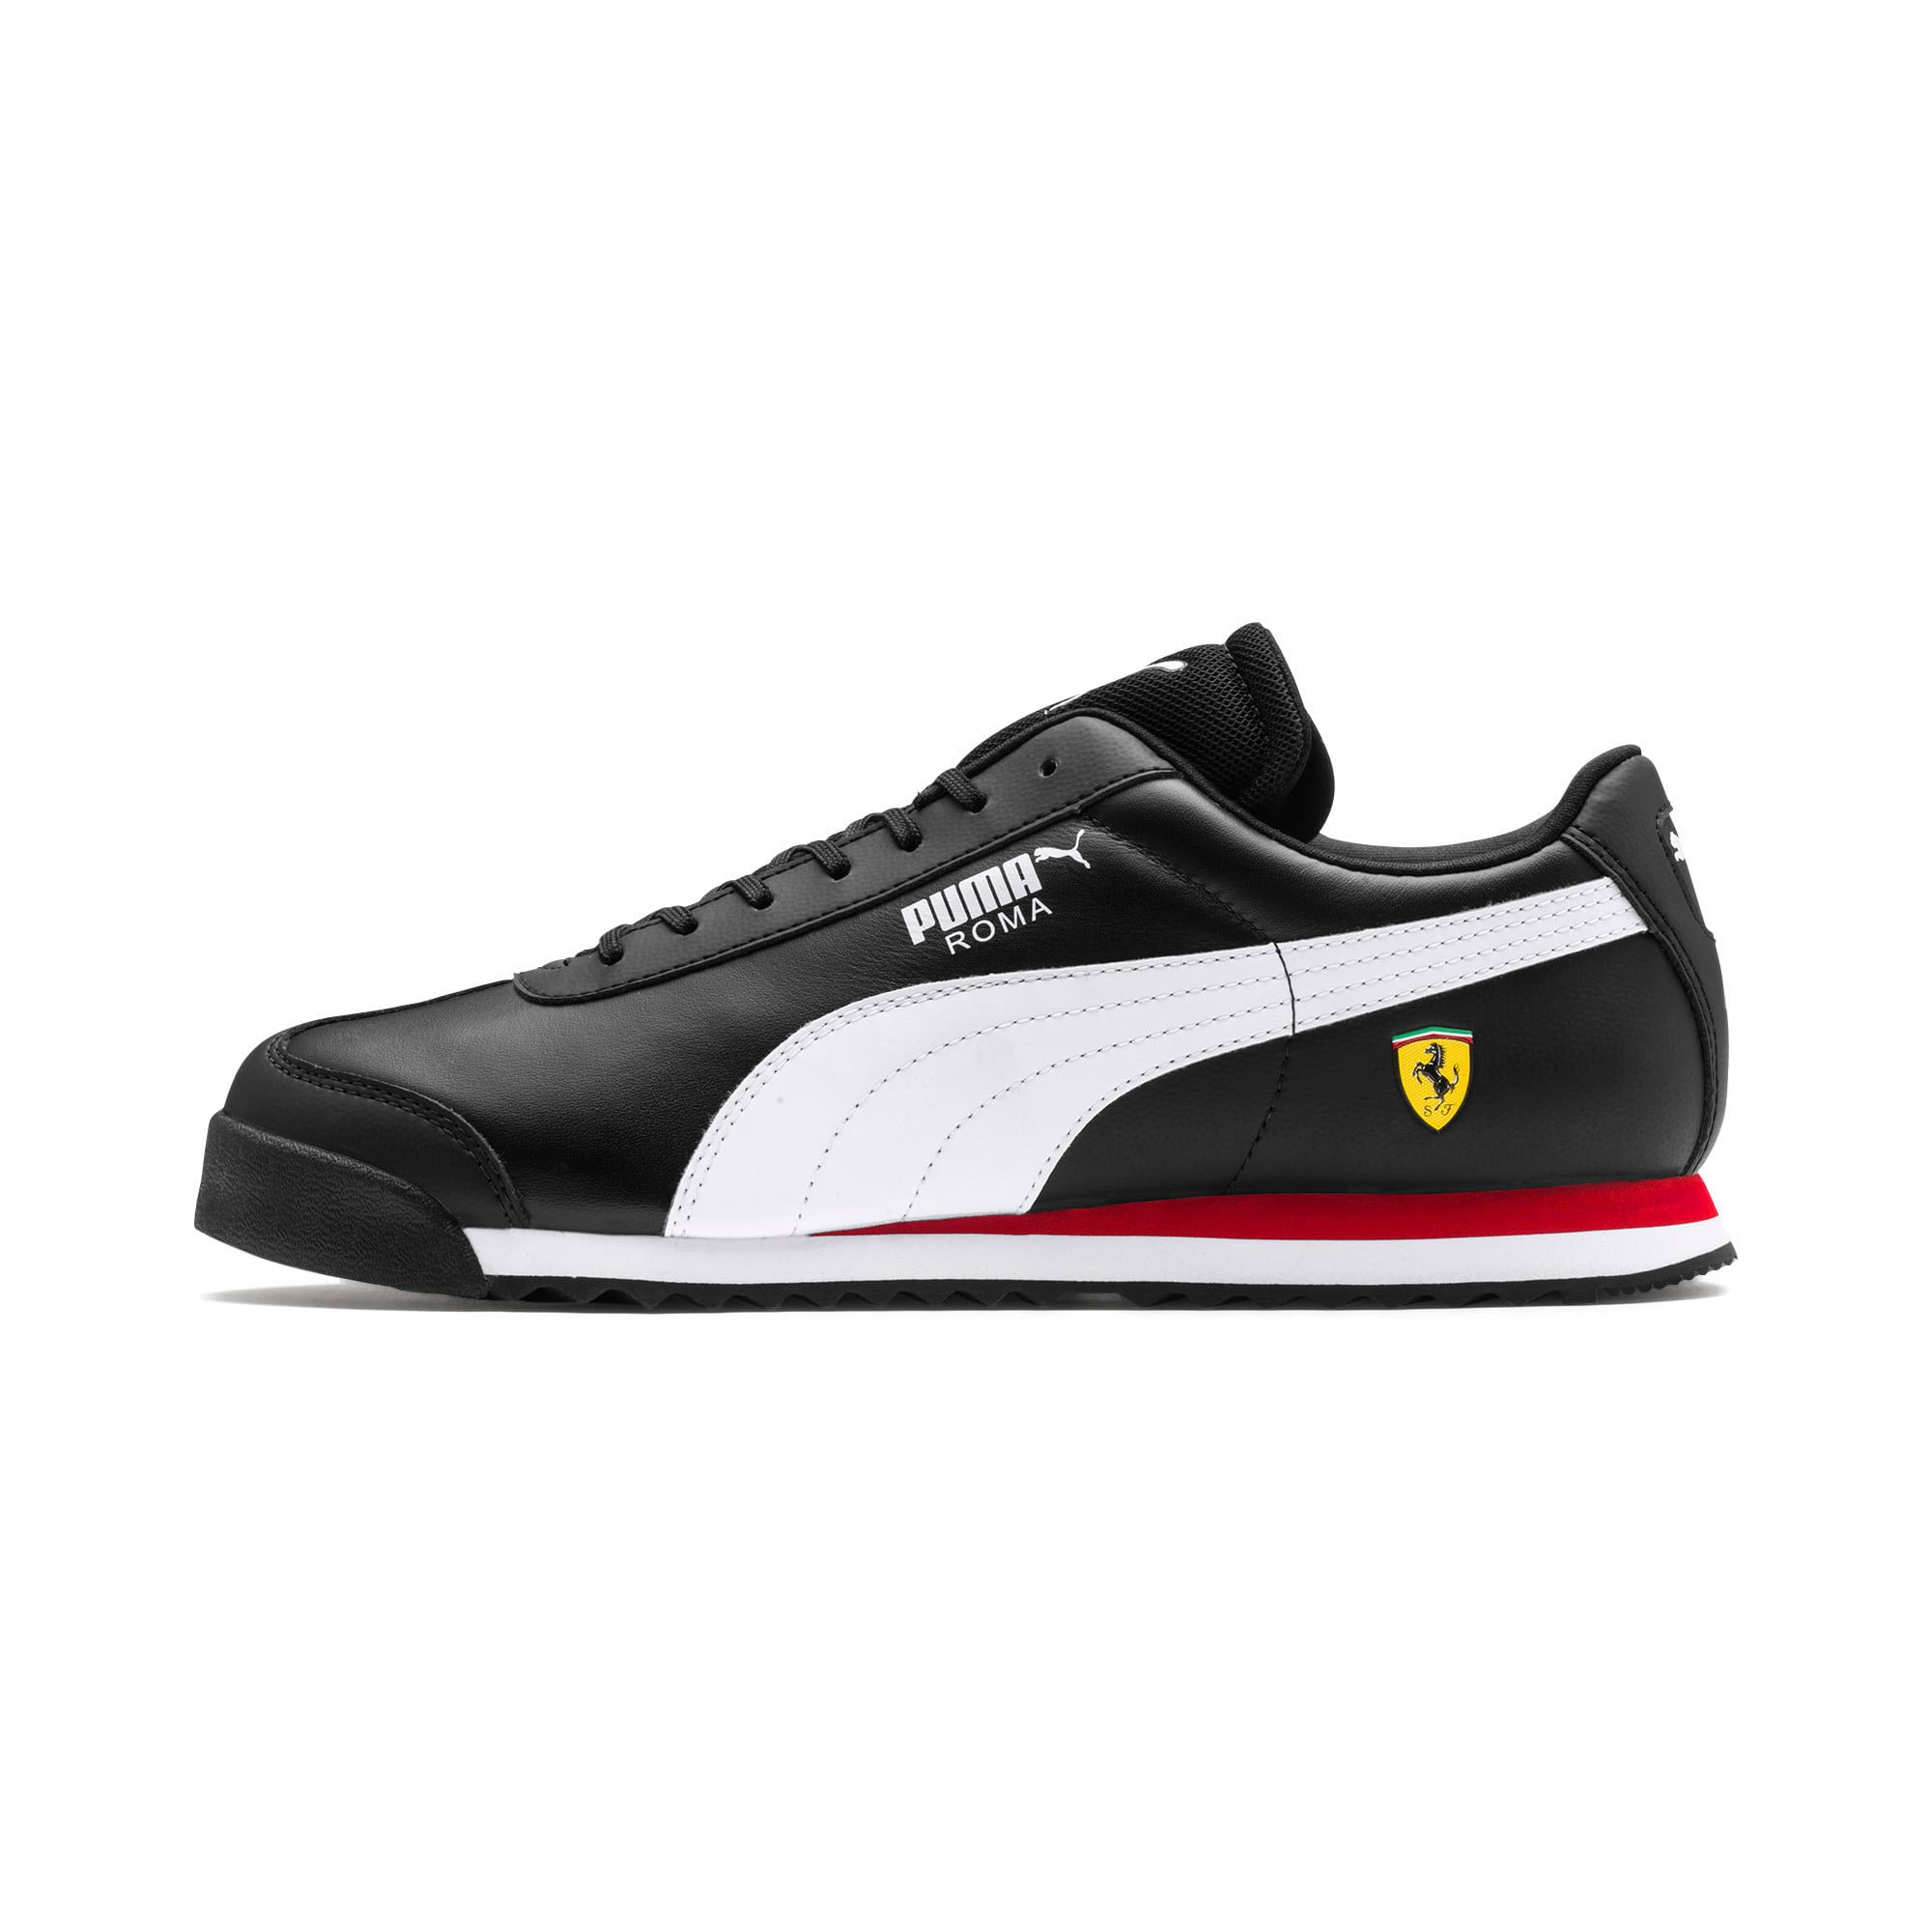 Thumbnail 1 of Scuderia Ferrari Roma Men's Sneakers, Black-White-Rosso Corsa, medium